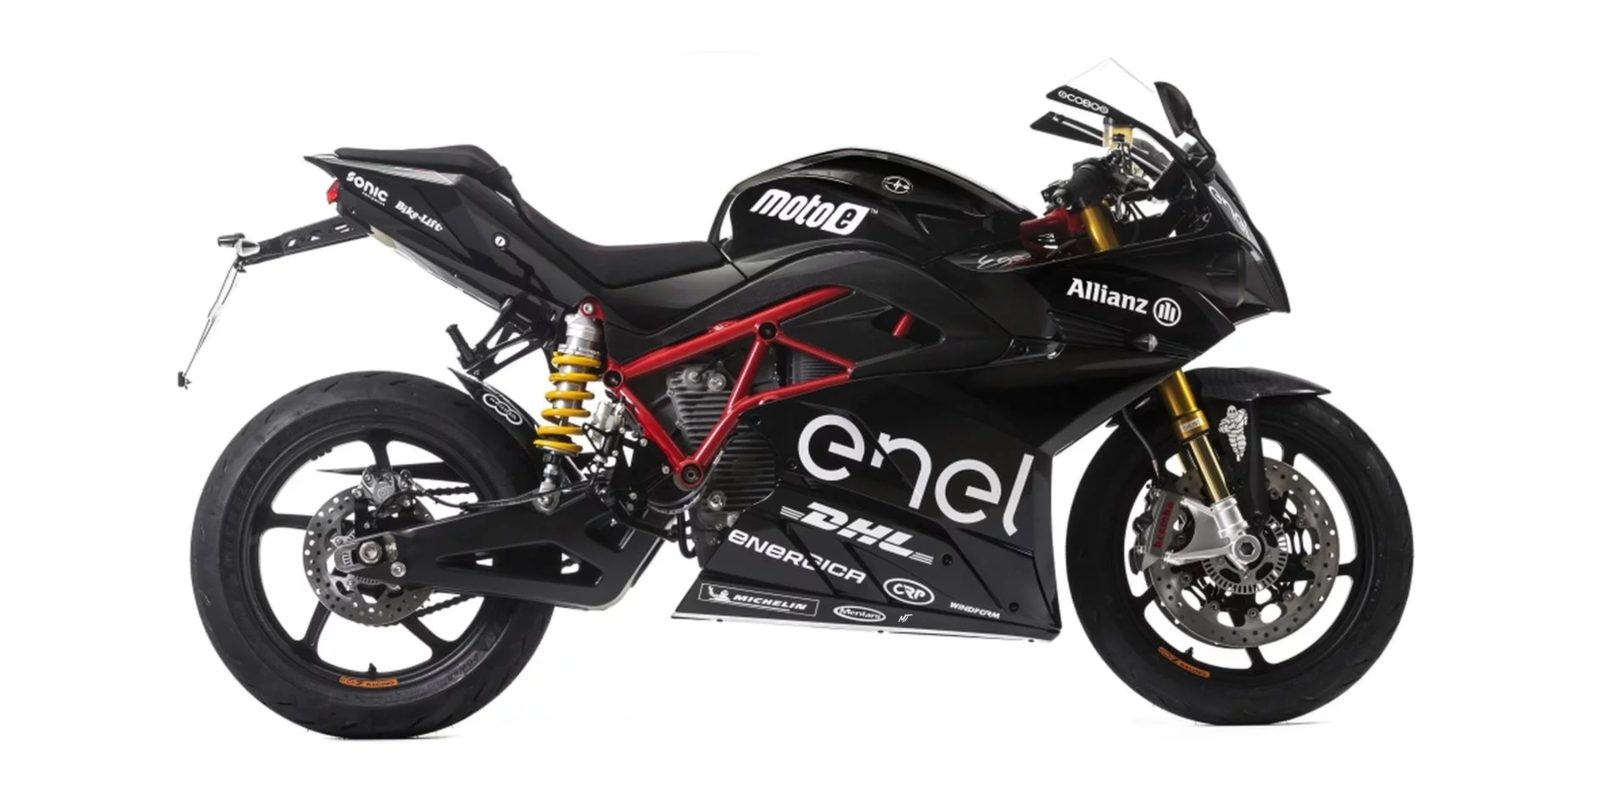 Energica planning small-ish (and presumably affordable) electric motorcycles